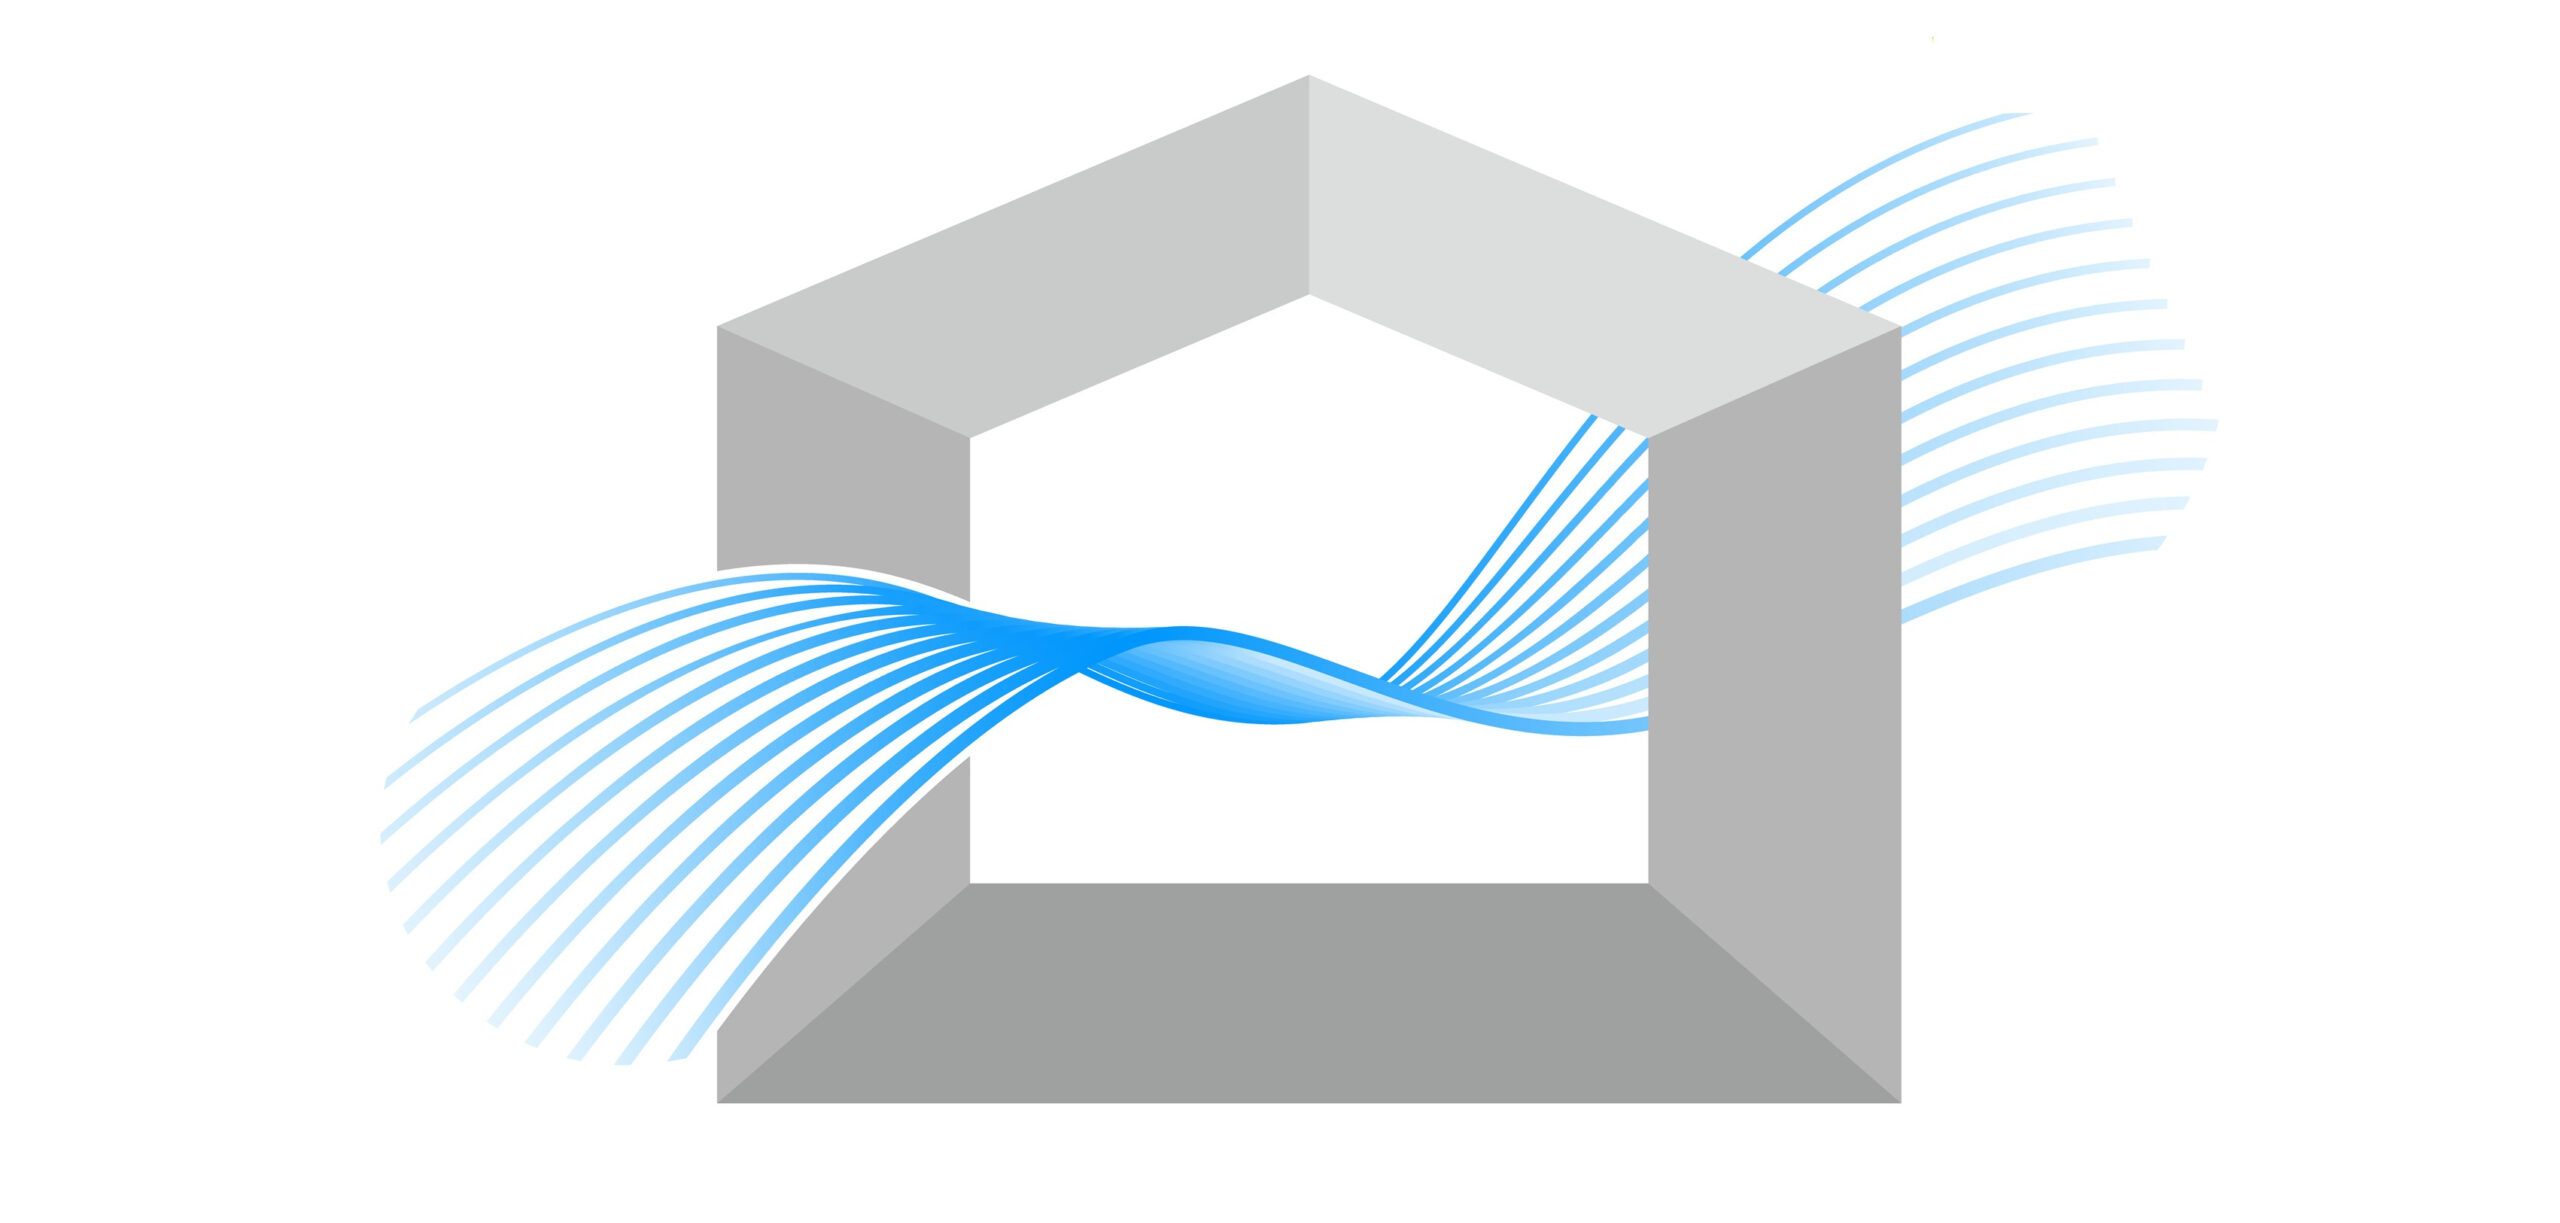 Ventilation,Illustrations,,Streamlined,Blue,Gradient,Winds,,Simple,House,Silhouettes